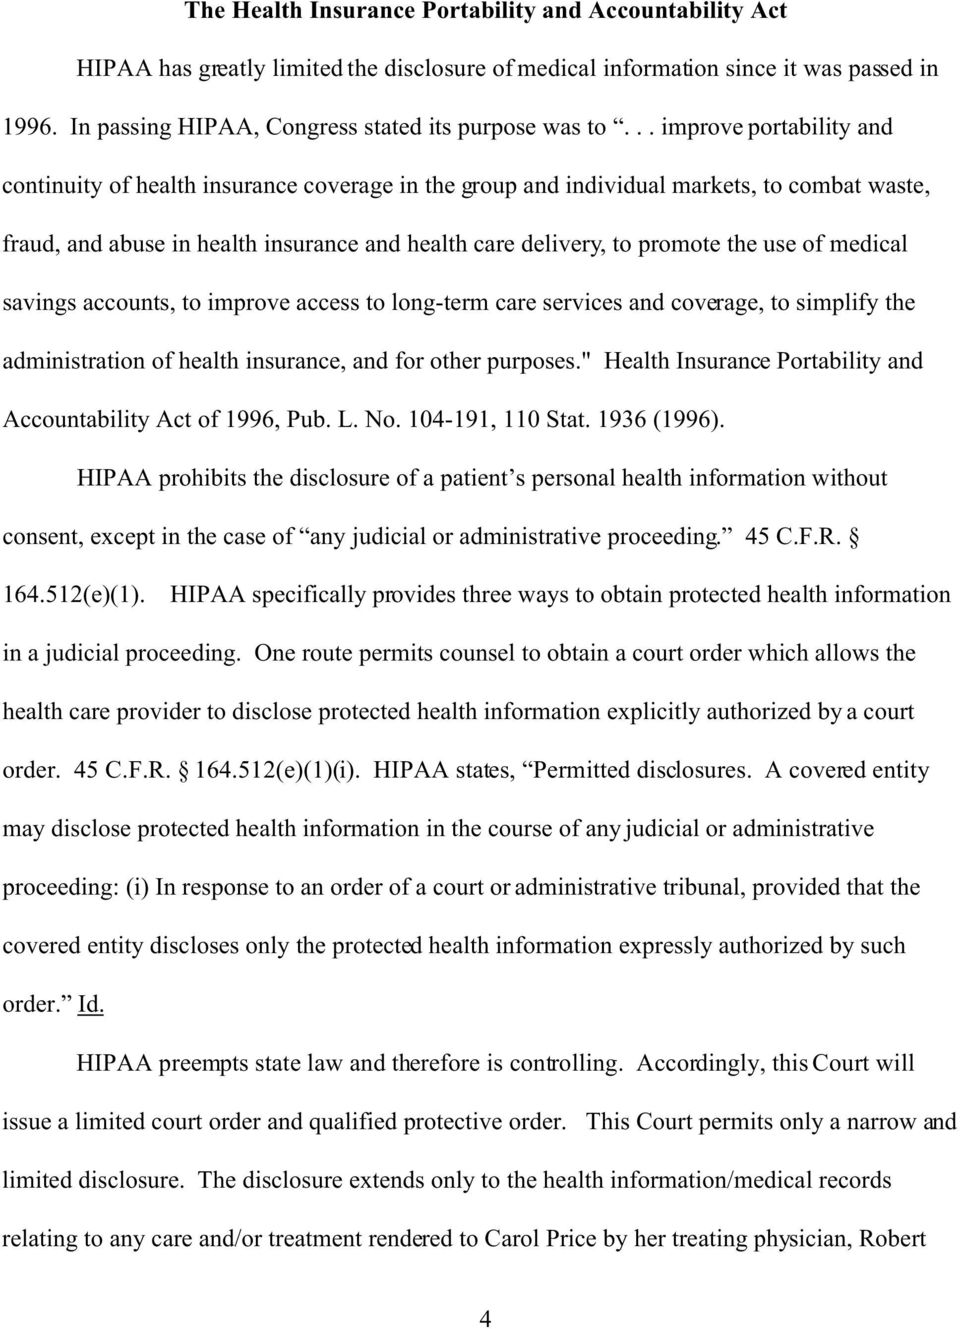 .. improve portability and continuity of health insurance coverage in the group and individual markets, to combat waste, fraud, and abuse in health insurance and health care delivery, to promote the